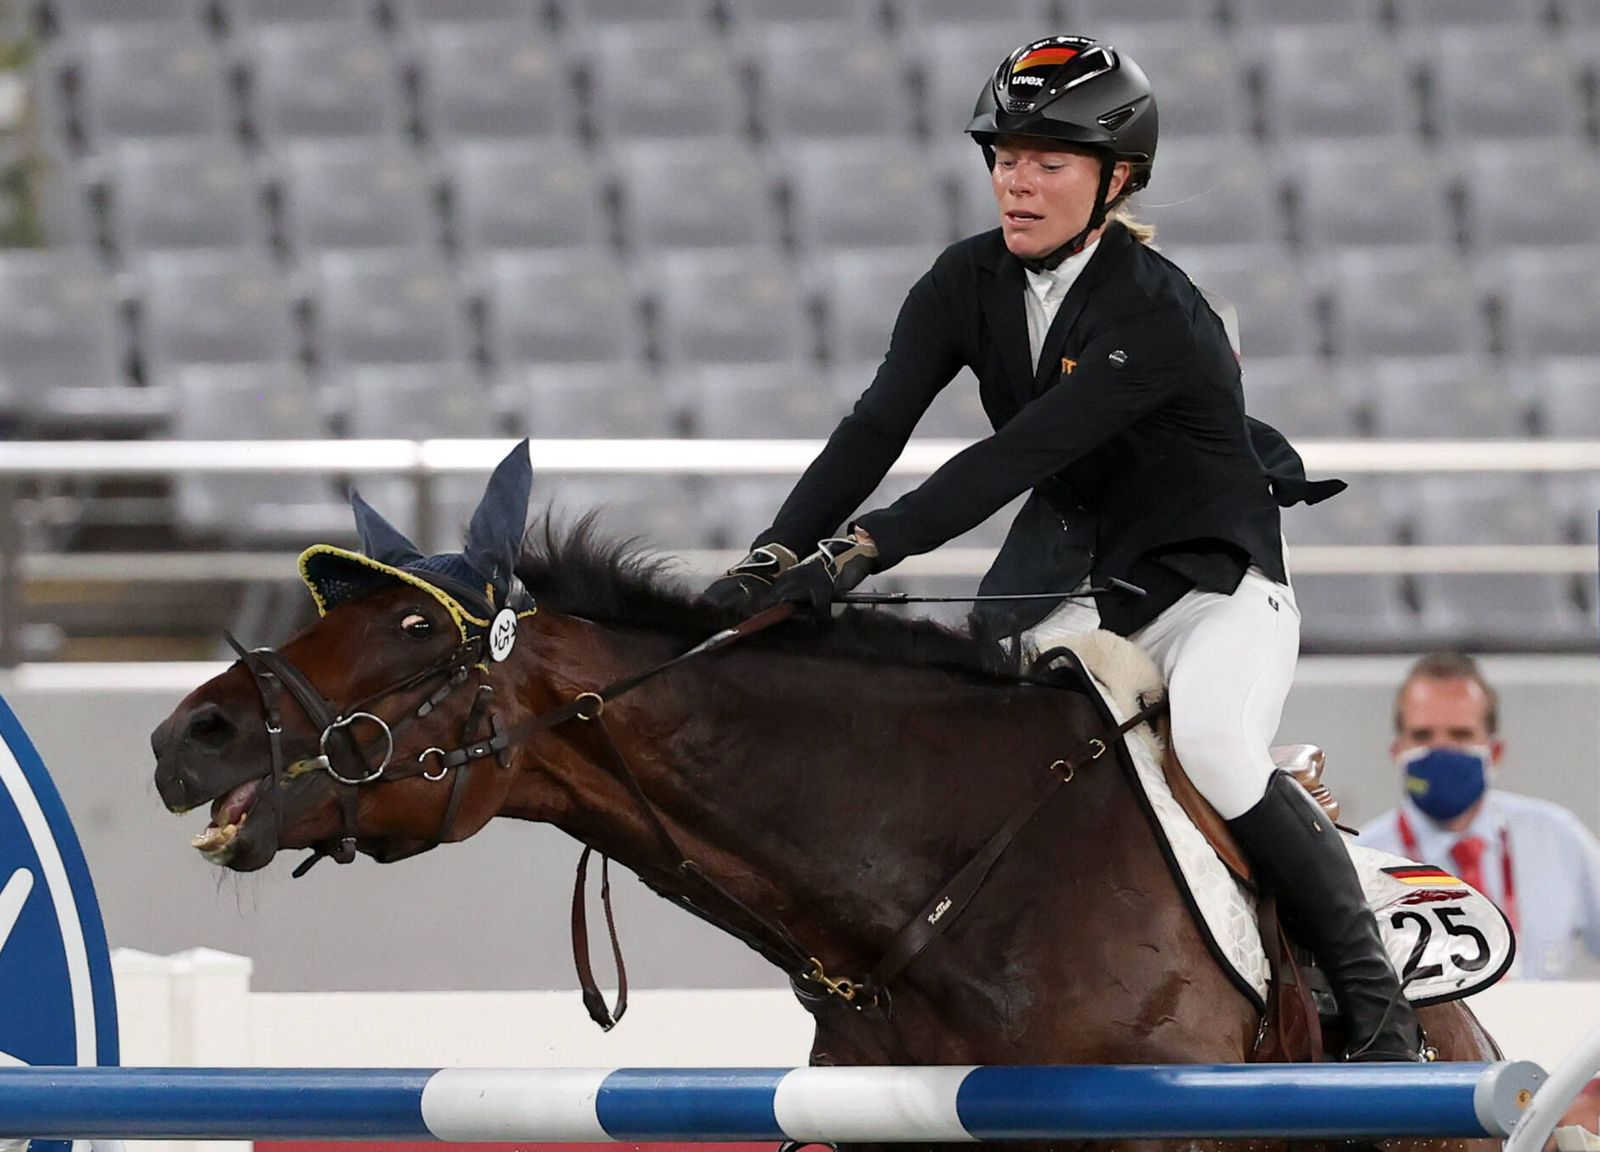 TOKYO, JAPAN - AUGUST 6, 2021: Germany s Annika Schleu competes in the women s individual riding show jumping event duri